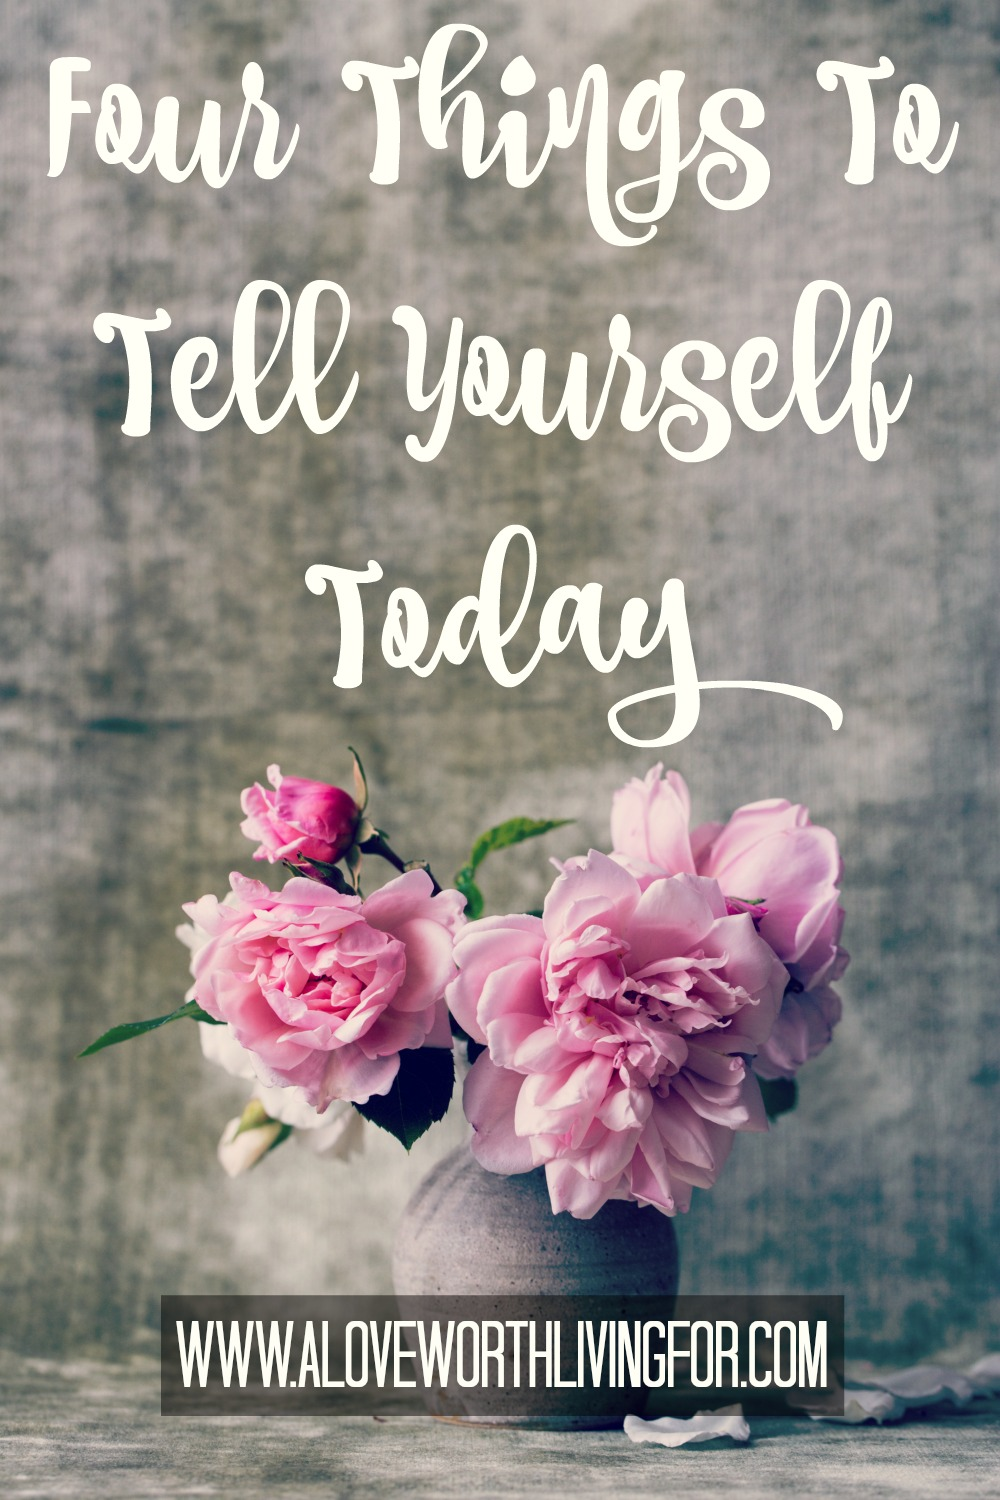 Be kind to yourself. It is often said, that if we were to say to & of others what we are saying to ourselves all day we would be labeled abusive. Stop mentally abusing yourself. Here are four things to tell yourself today!